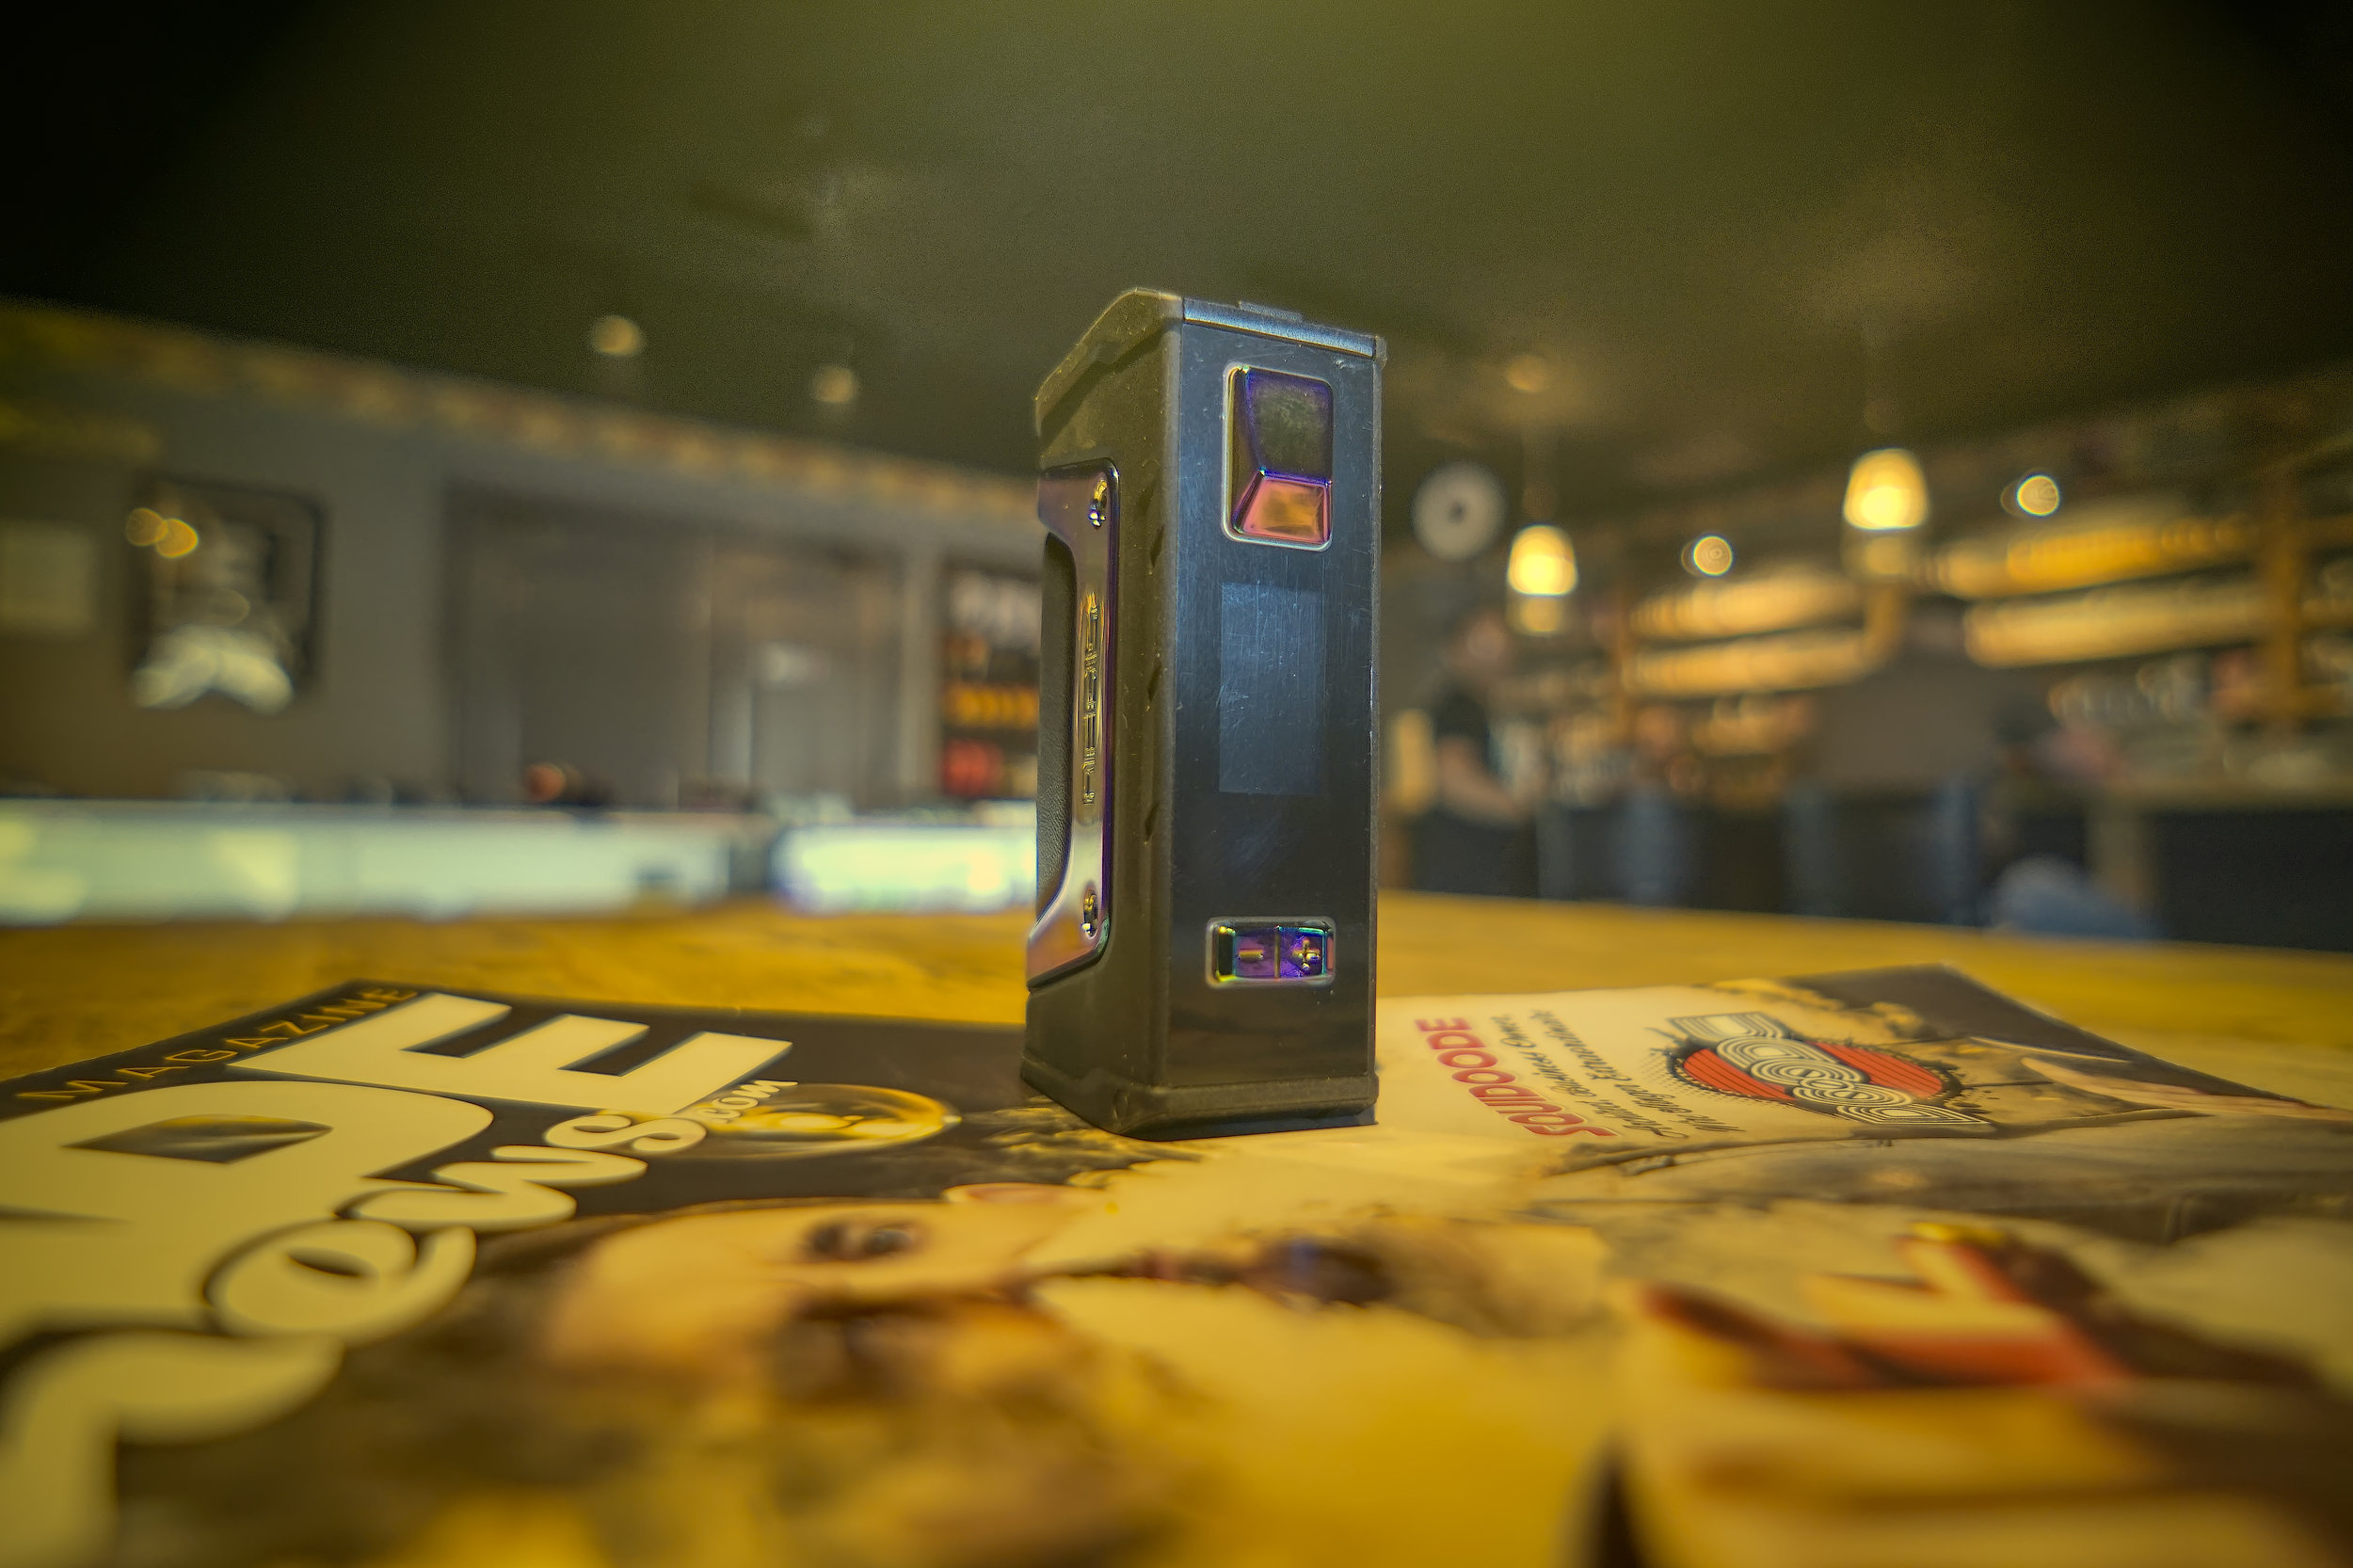 AEGIS LEGEND MOD 200W   When GeekVape designed the Aegis Legend 200W Mod the goal was to build a durable device that could stand up to the day-to-day rigors that some vapers put their hardware through. Essentially they weren't designing a mod for someone that sits at a desk all day. It would certainly serve you fine, but the Aegis Legend is made to be taken outside, dropped in the dirt, and even sit in the rain a bit if needed.  Featuring a shock-resistant design with IP67 waterproofing and dustproofing, the Aegis Legend is built to withstand most of what the world, and you, can throw at a mod. While you're not going to want to toss it off the side of a building or to the bottom of a lake, the Legend is more than capable of handling a fall from 1 meter or less. Plus it's rated to withstand full immersion for up to 30 minutes in 1 meter or less of water. The Legend is also built to keep dust and grit out, along with being designed for easy cleaning.